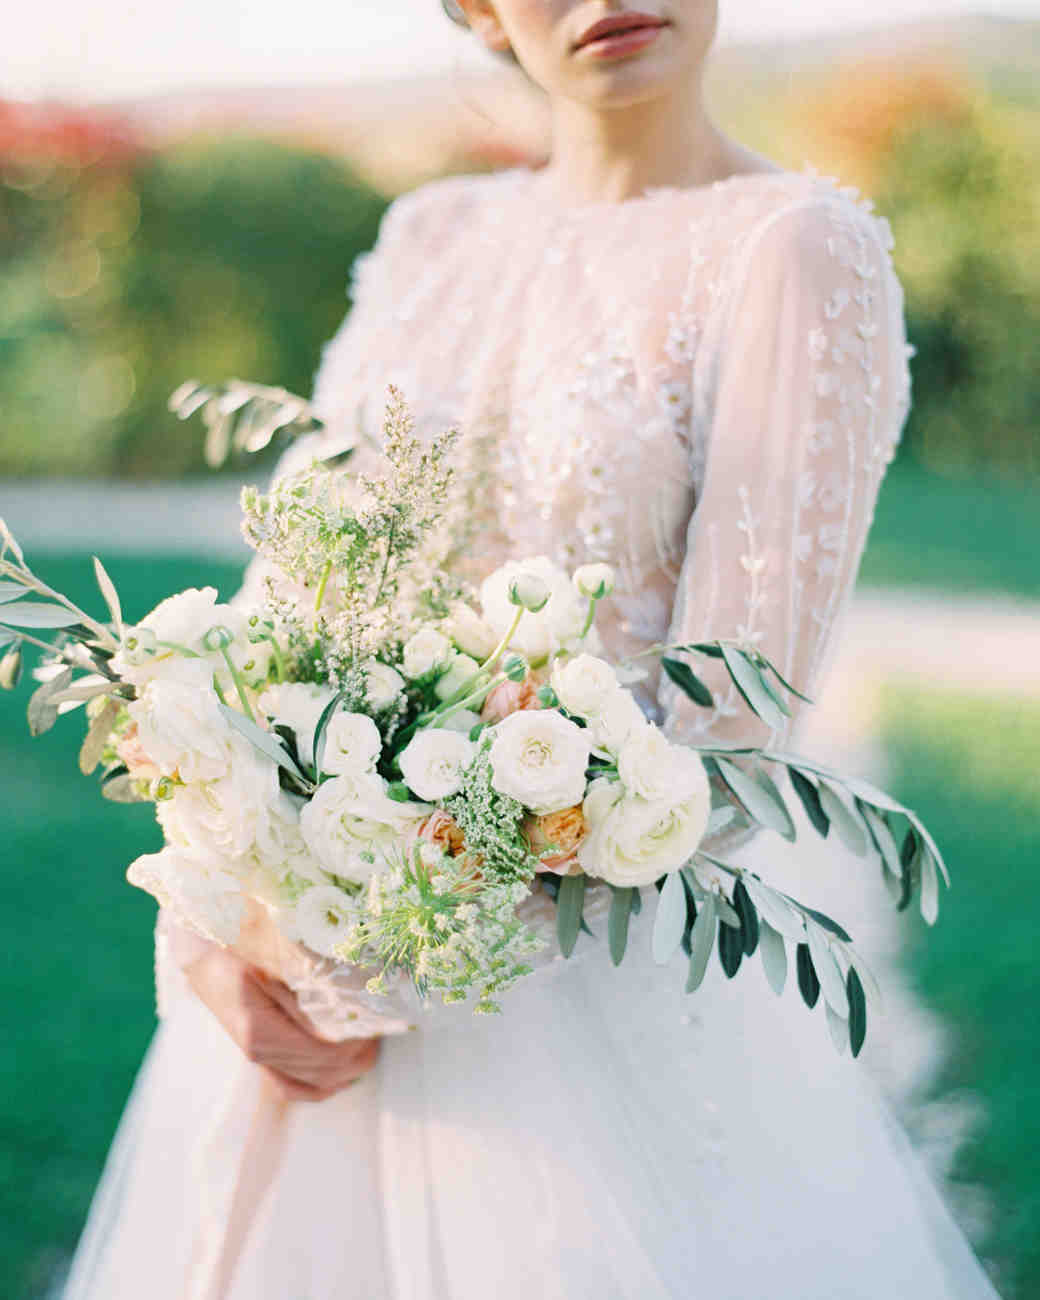 Loose Bouquet with White Ranunculus and Queen Anne Lace